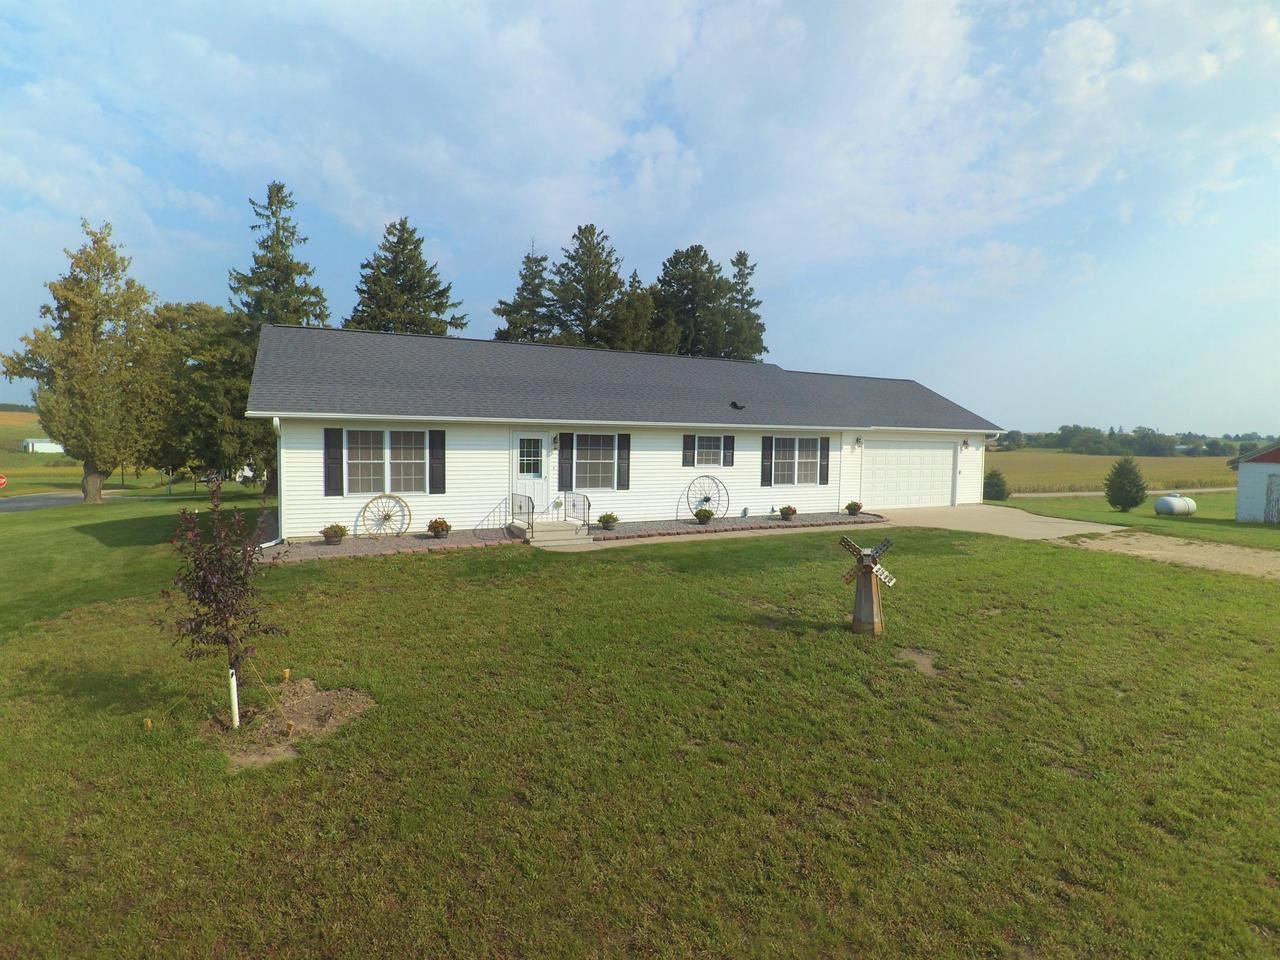 S2114 Hegge Rd, Westby, WI 54667 - #: 371464